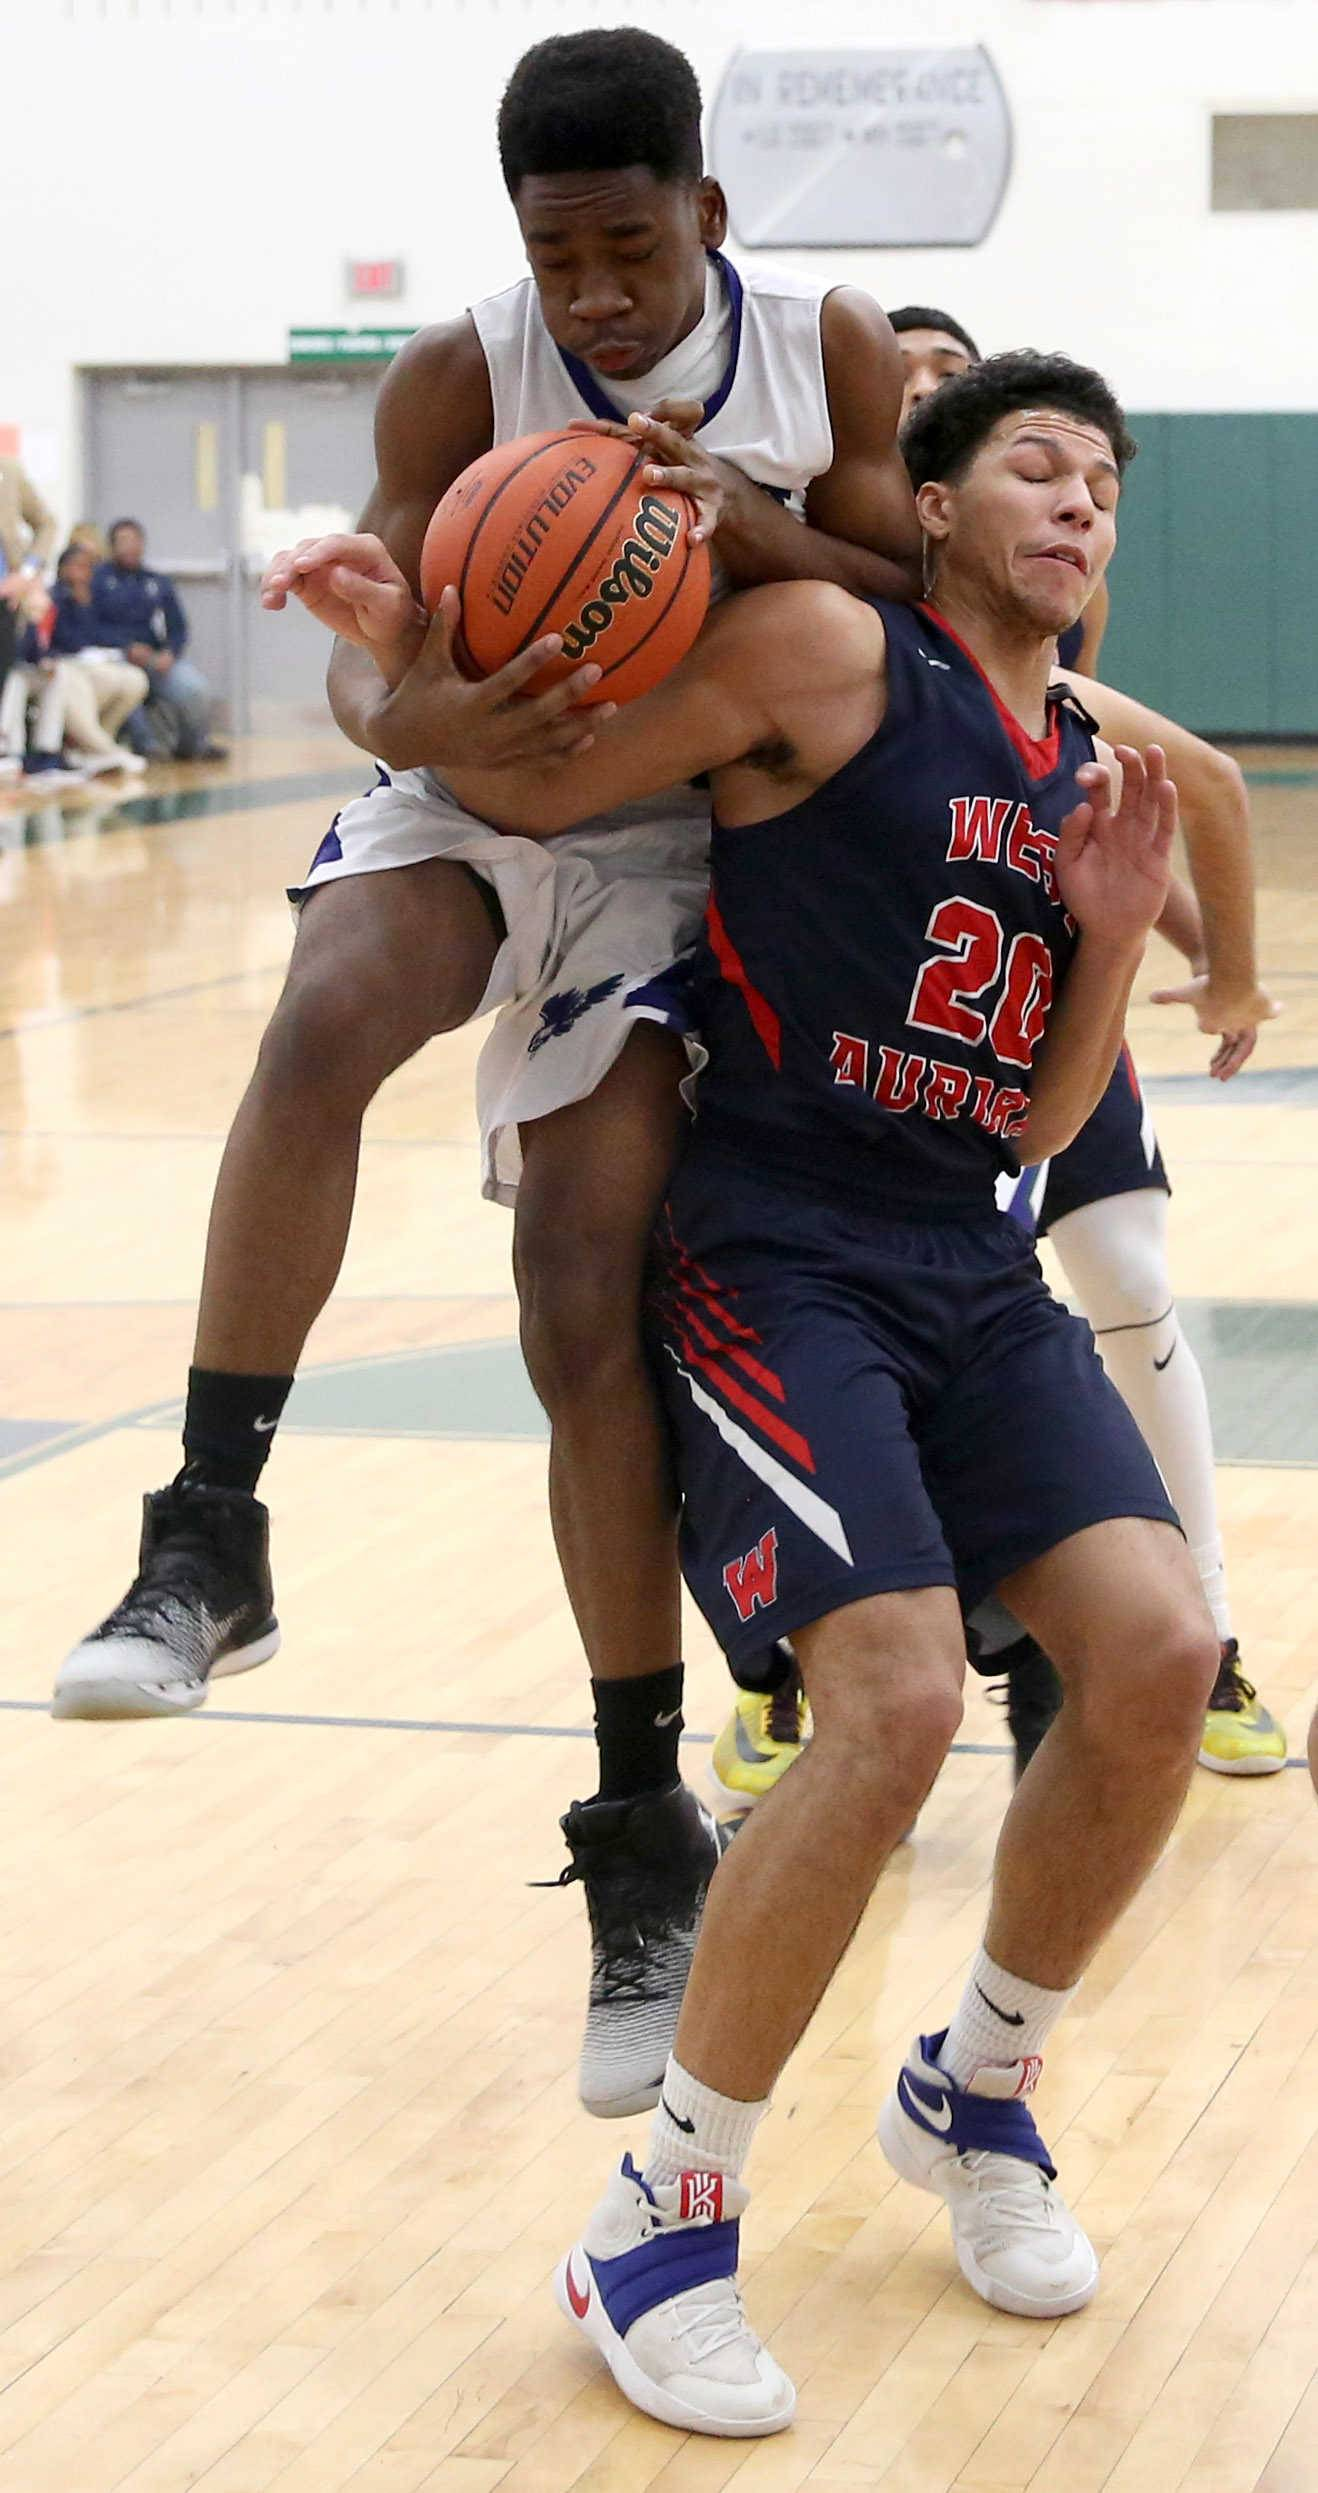 Bartlett's Jake Ibegbulem, left, gets tangled up with West Aurora's Caleb Siler during varsity boys basketball at Bartlett Wednesday night.